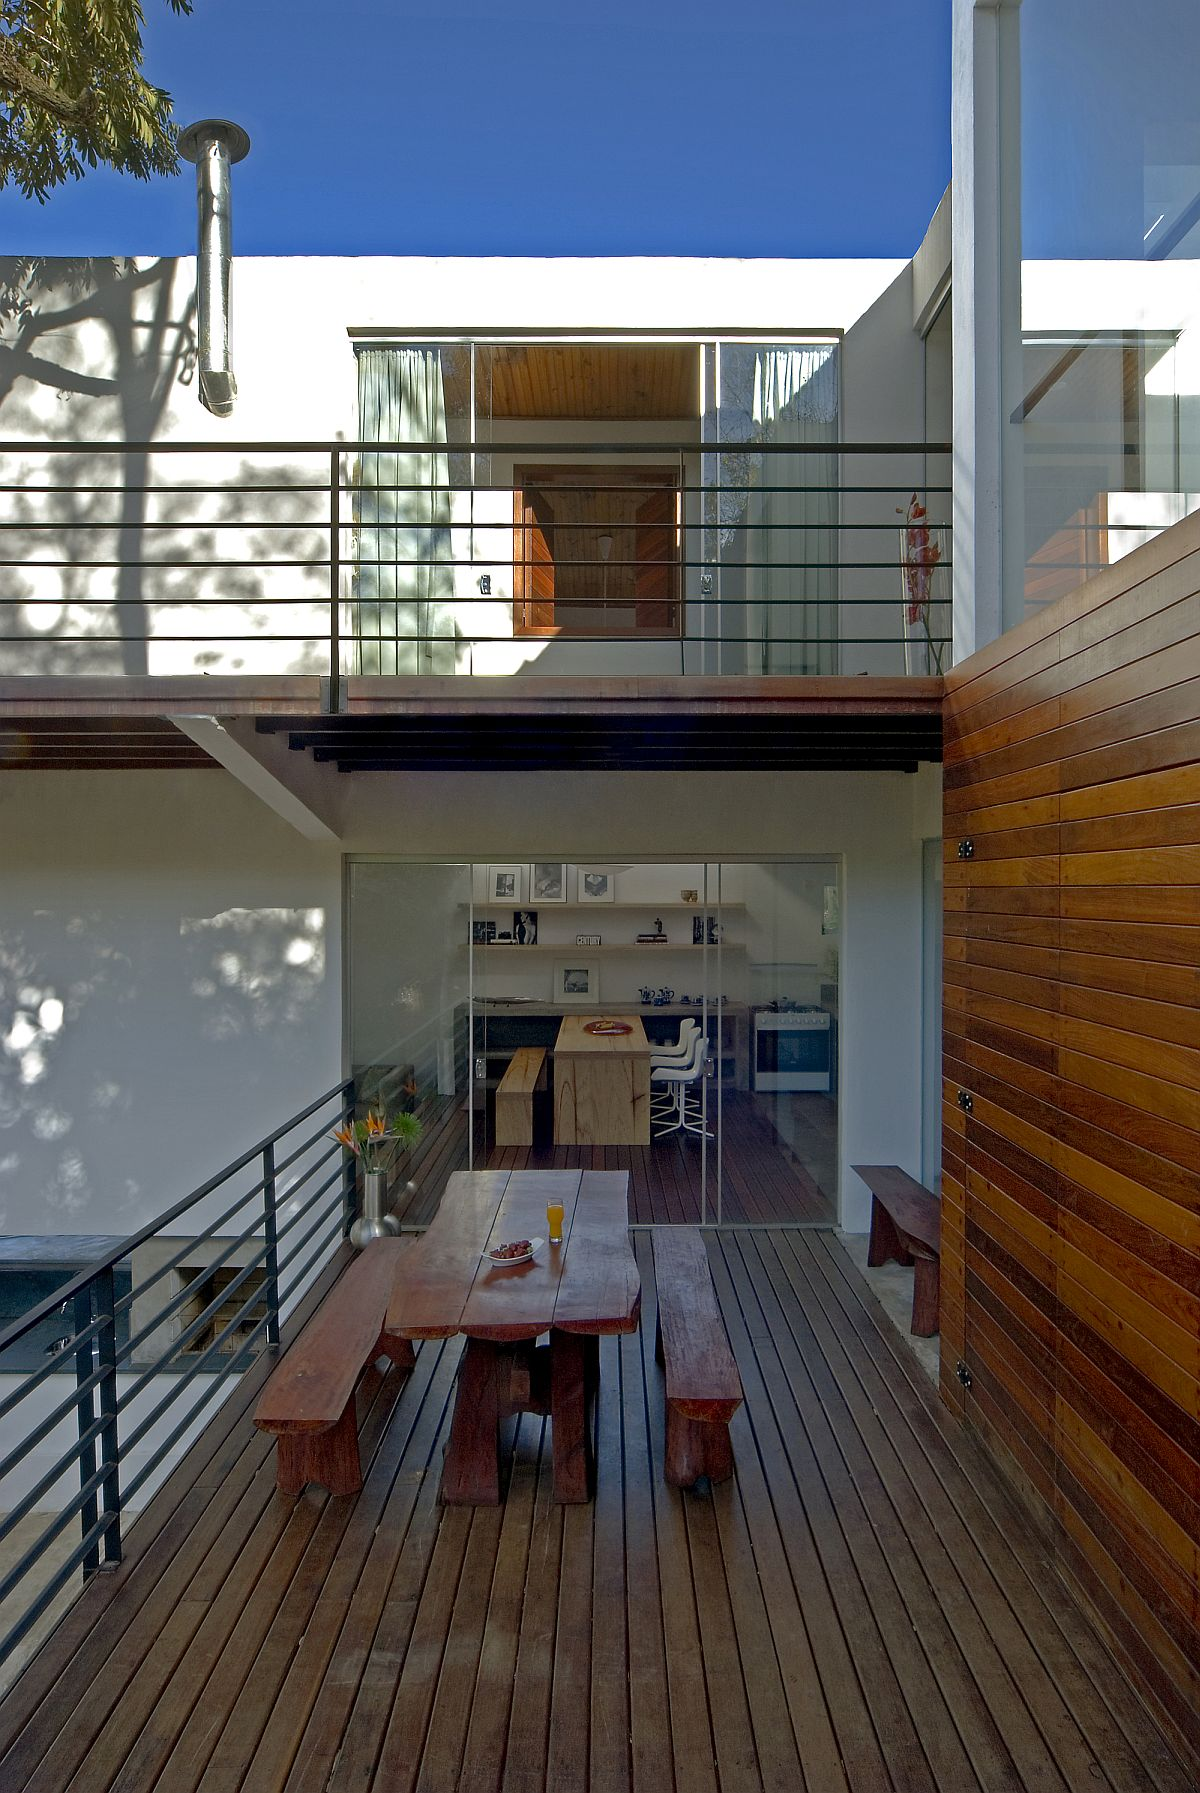 Wooden decks integrate different blocks of the house and also offer outdoor spaces